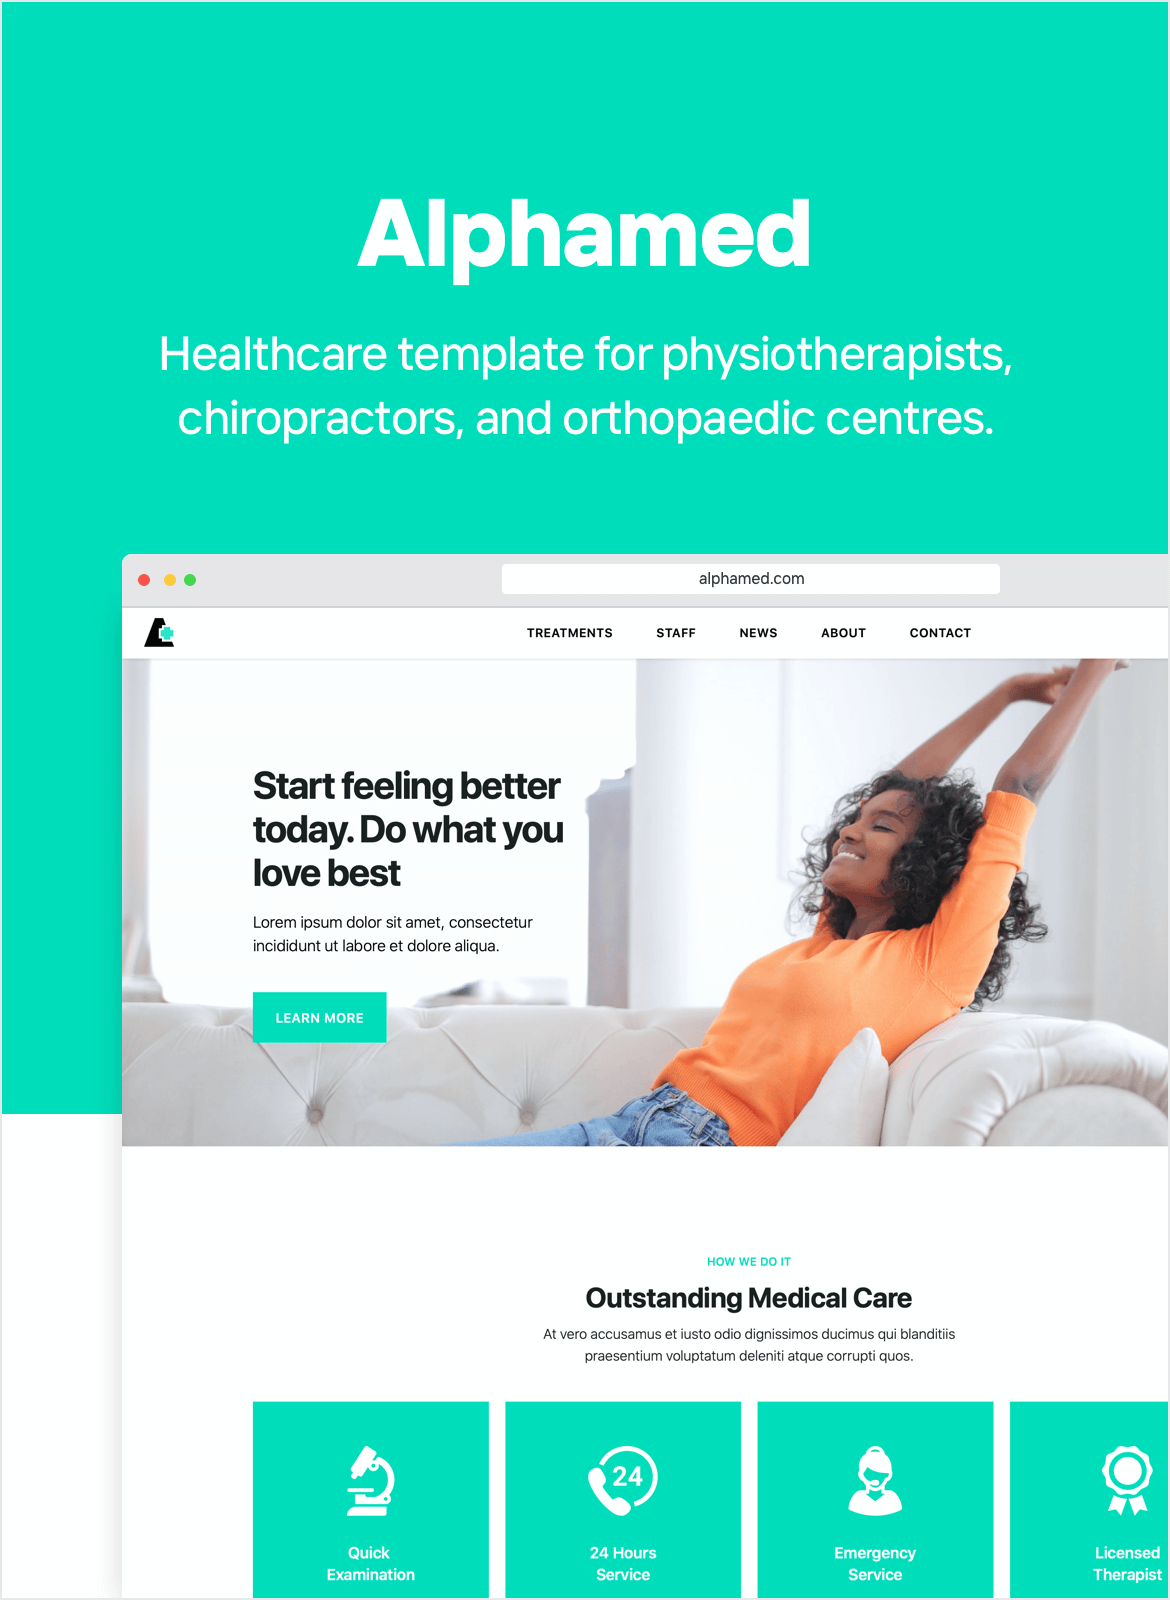 Healthcare website template for physiotherapists, chiropractors, orthopaedic clinics and rehabilitation centres